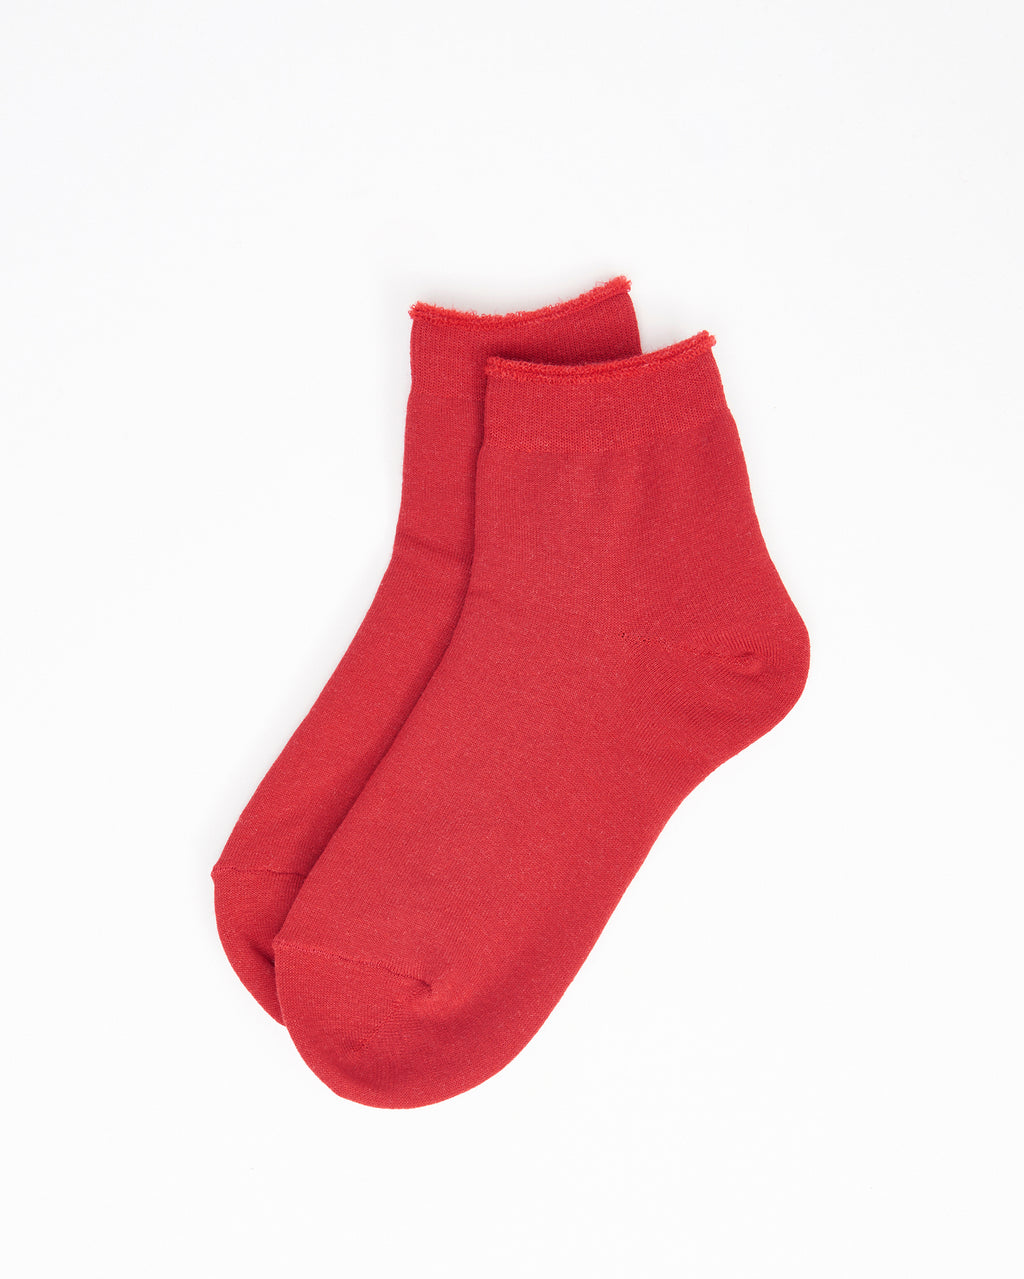 City Socks Short – Red